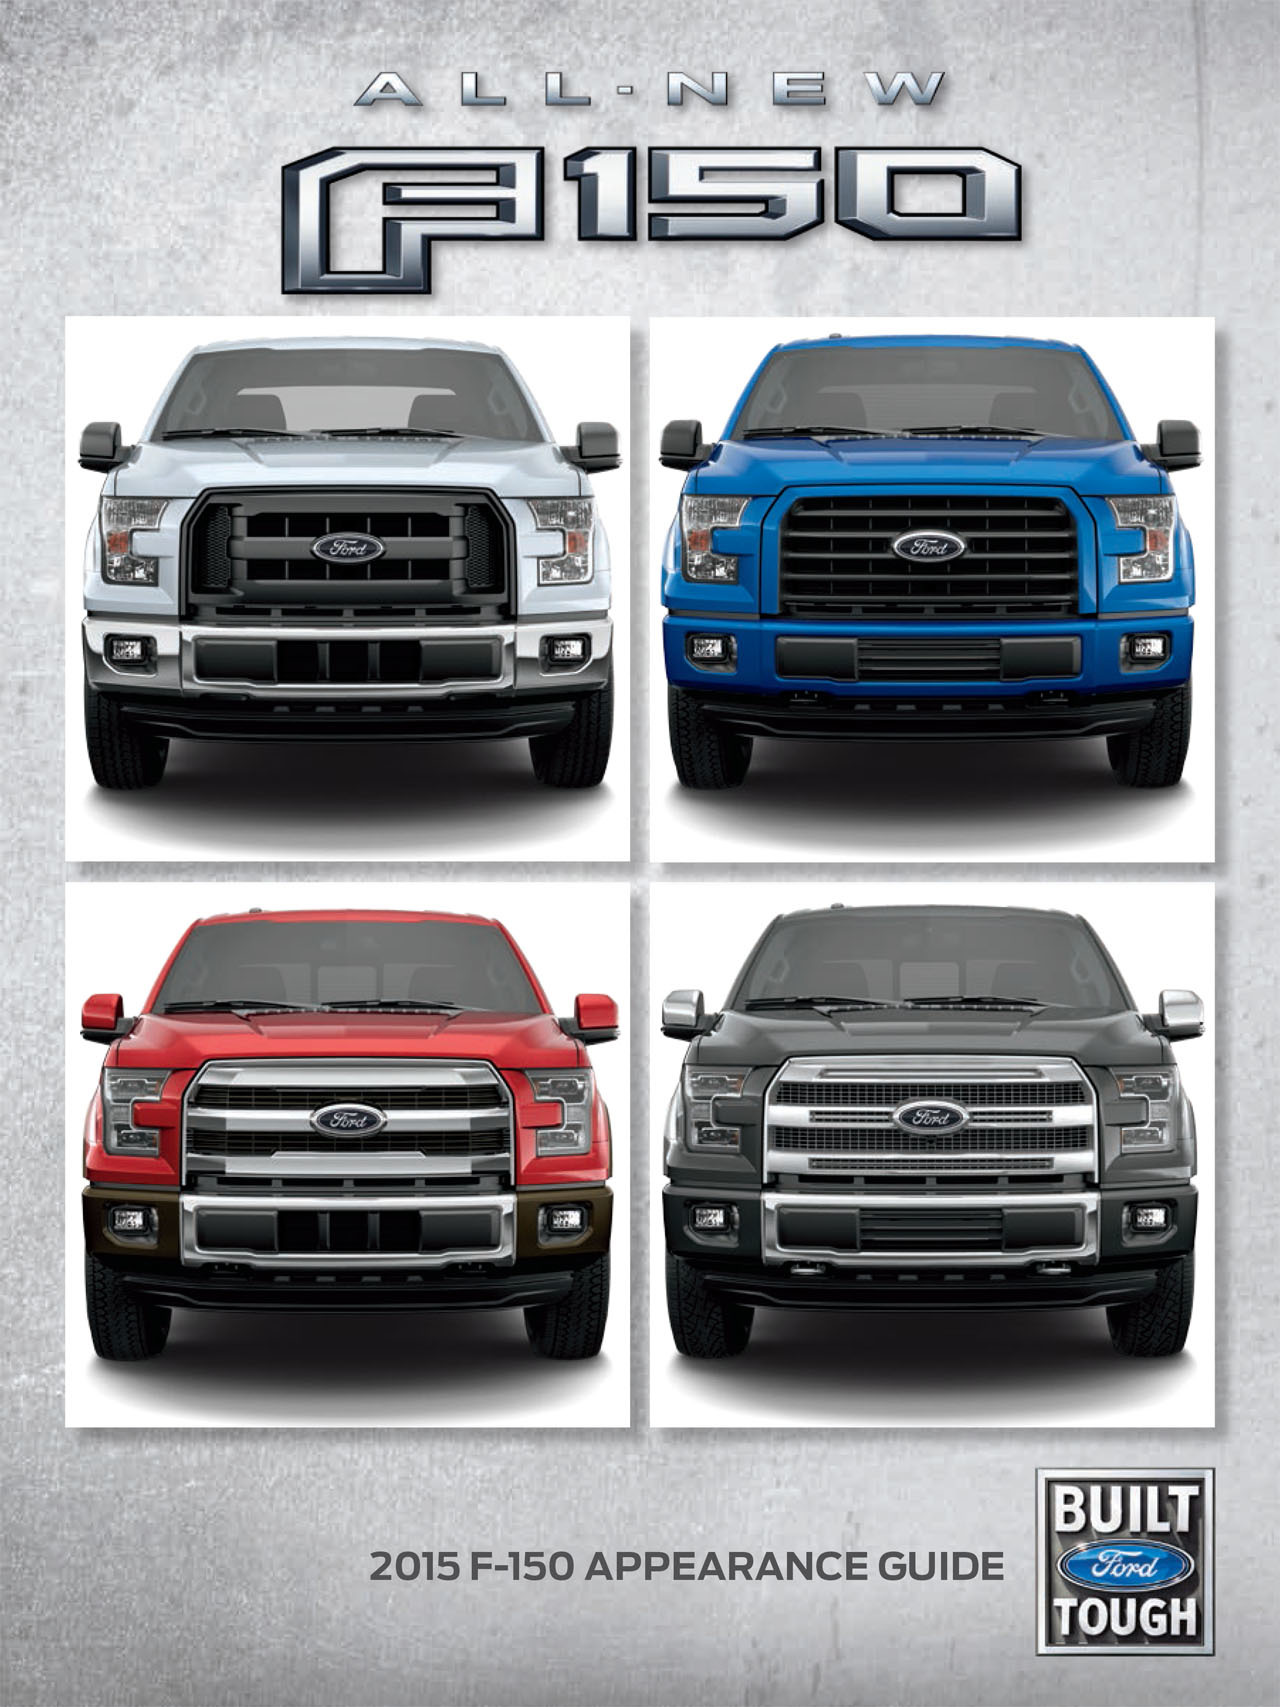 2015 F-150 Appearance Guide